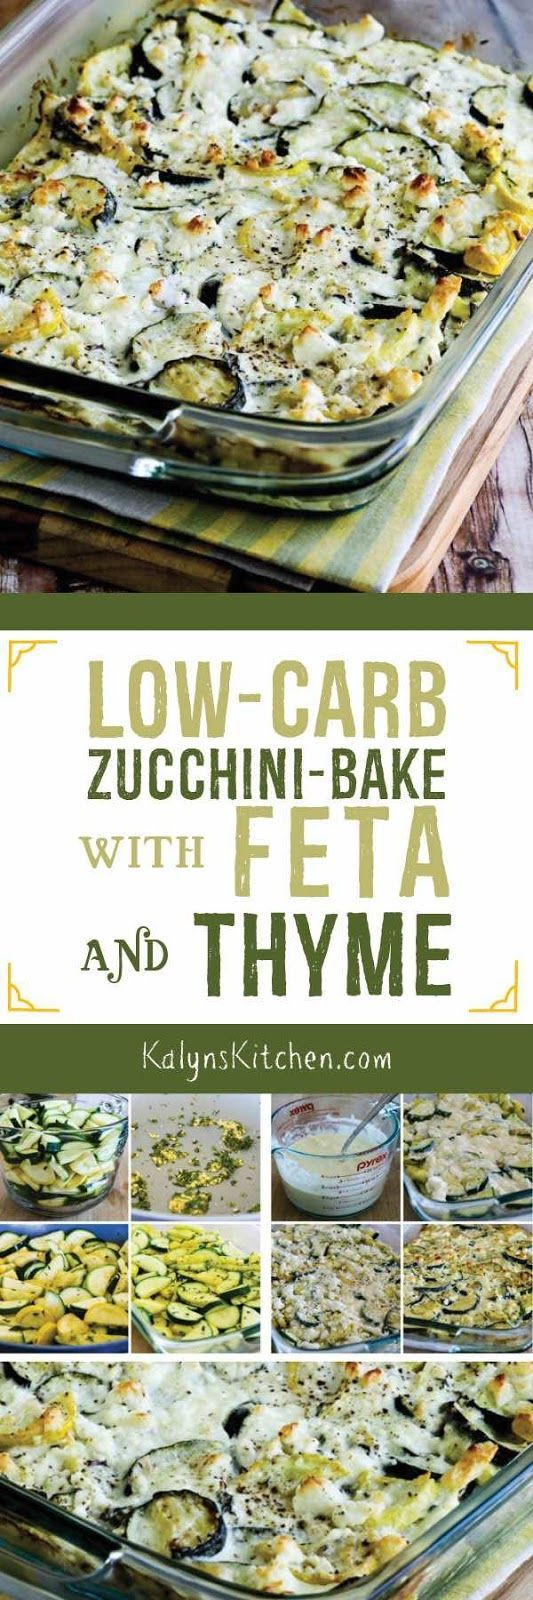 Zucchini are showing up in the garden, and this delicious Low-Carb Zucchini Bake with Feta and Thyme is a wonderful way to use them. And this tasty zucchini bake is low-carb, Keto, low-glycemic, gluten-free, meatless, and South Beach Diet friendly. [found on KalynsKitchen.com]